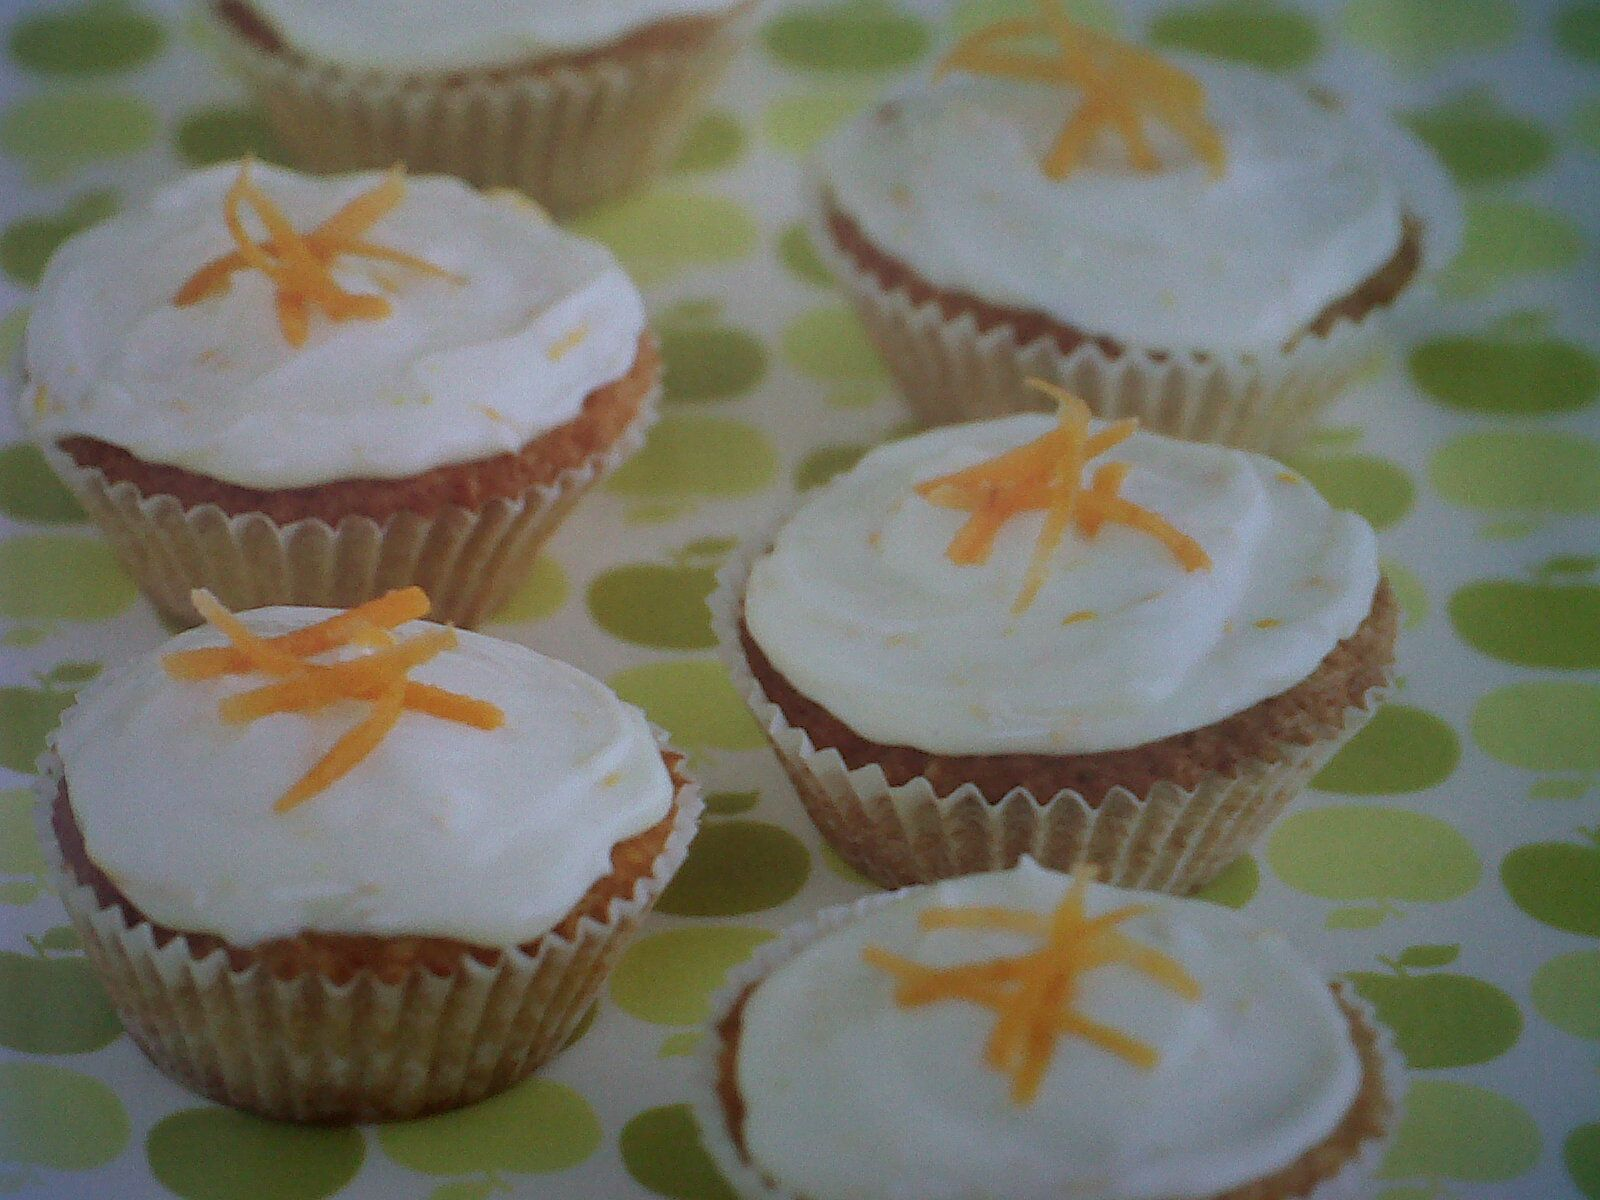 Carrot cupcakes featured in the childrens baking book